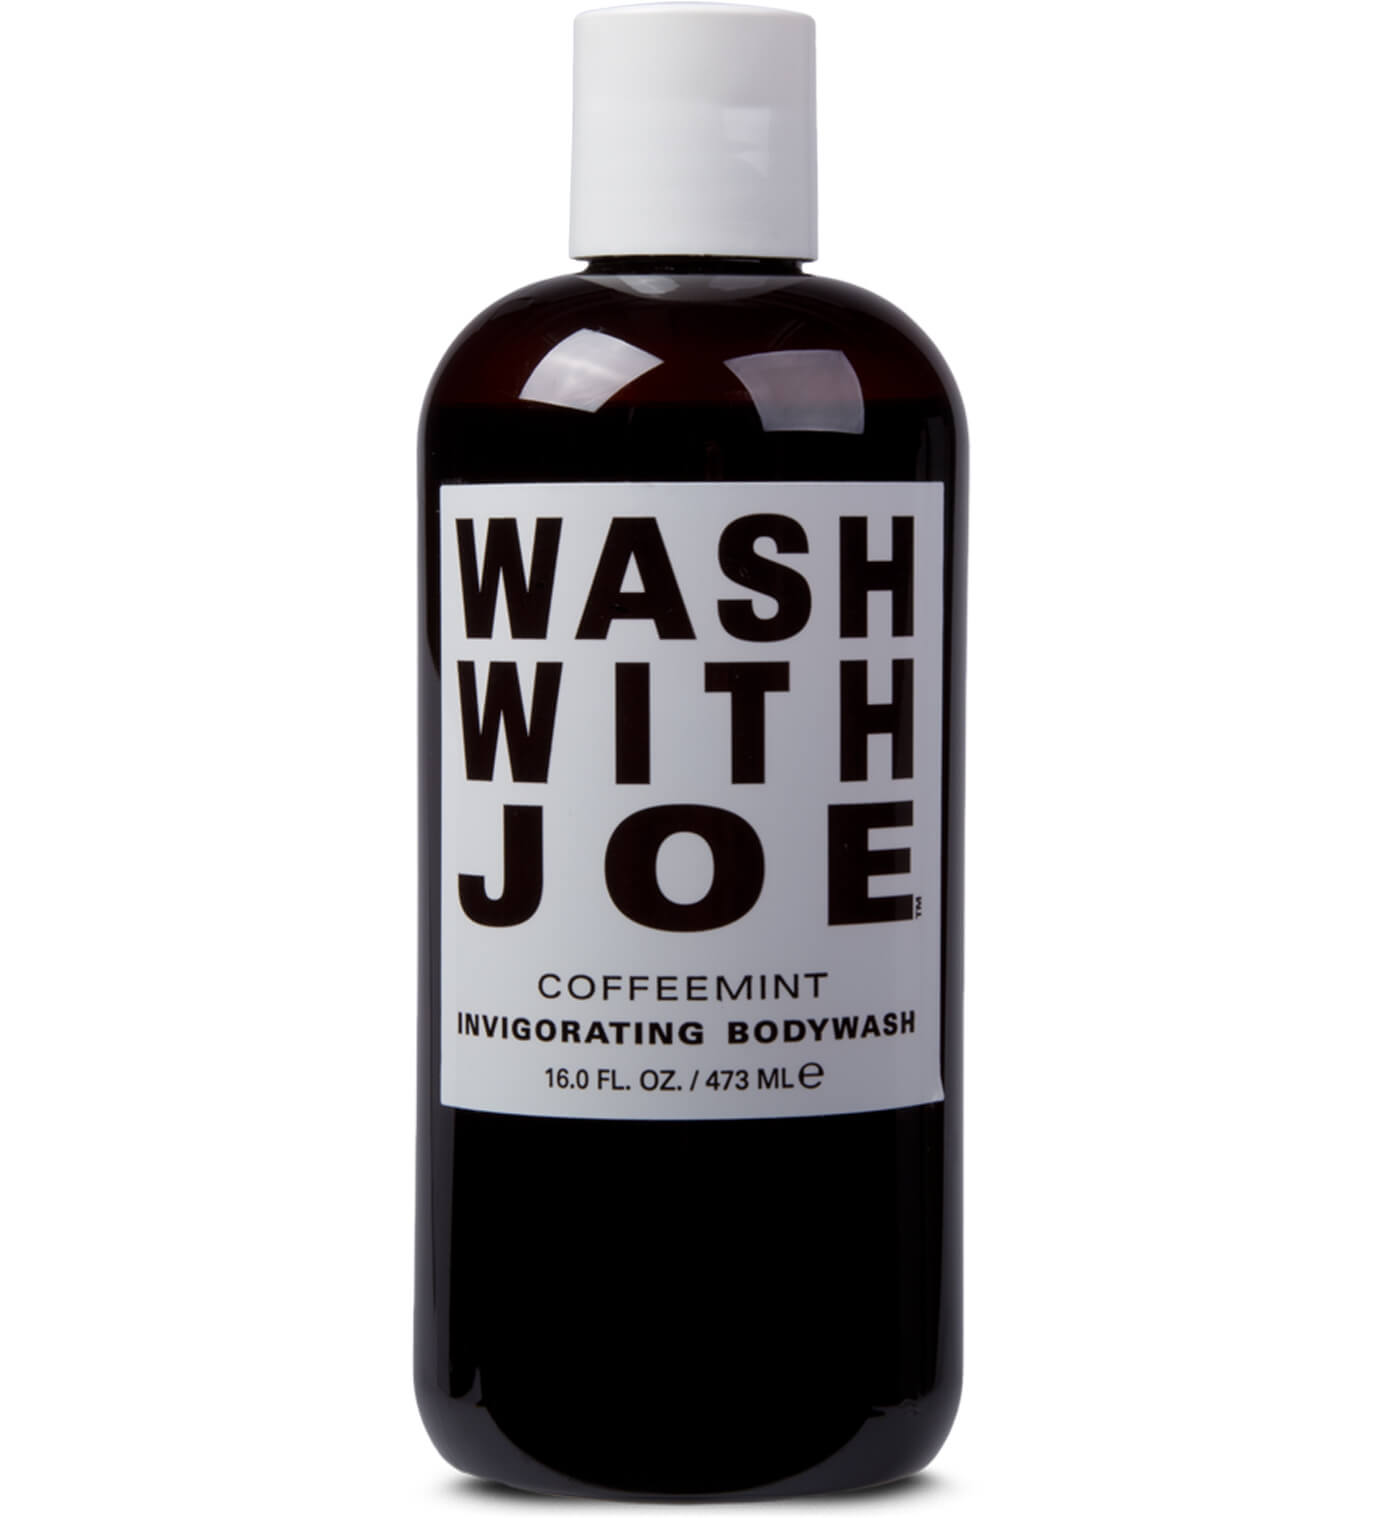 WASH WITH JOE Duschgel